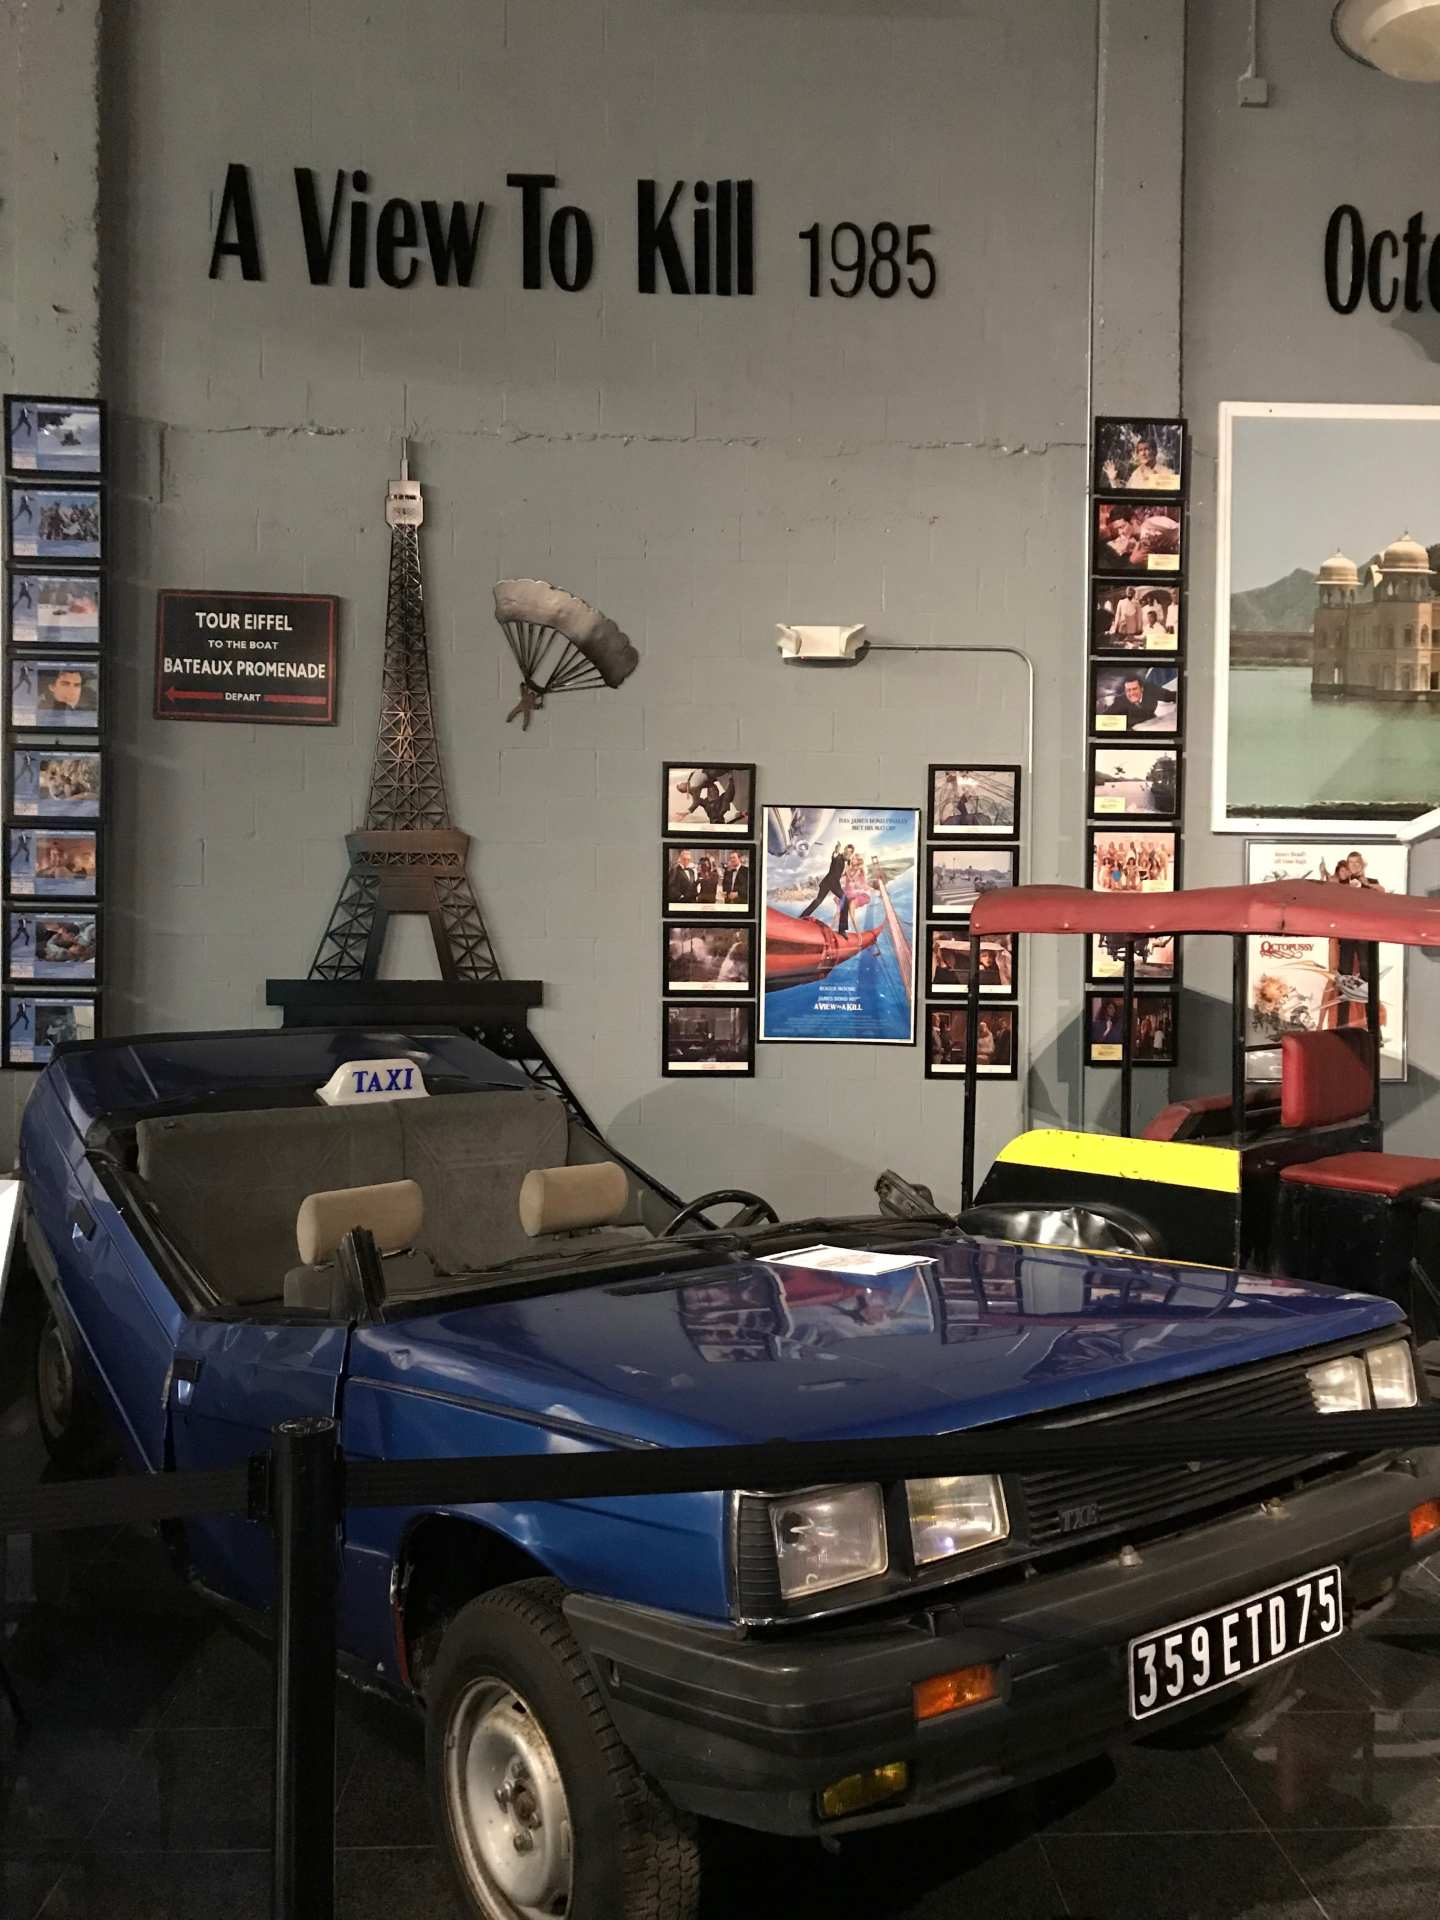 A view to a kill car in museum